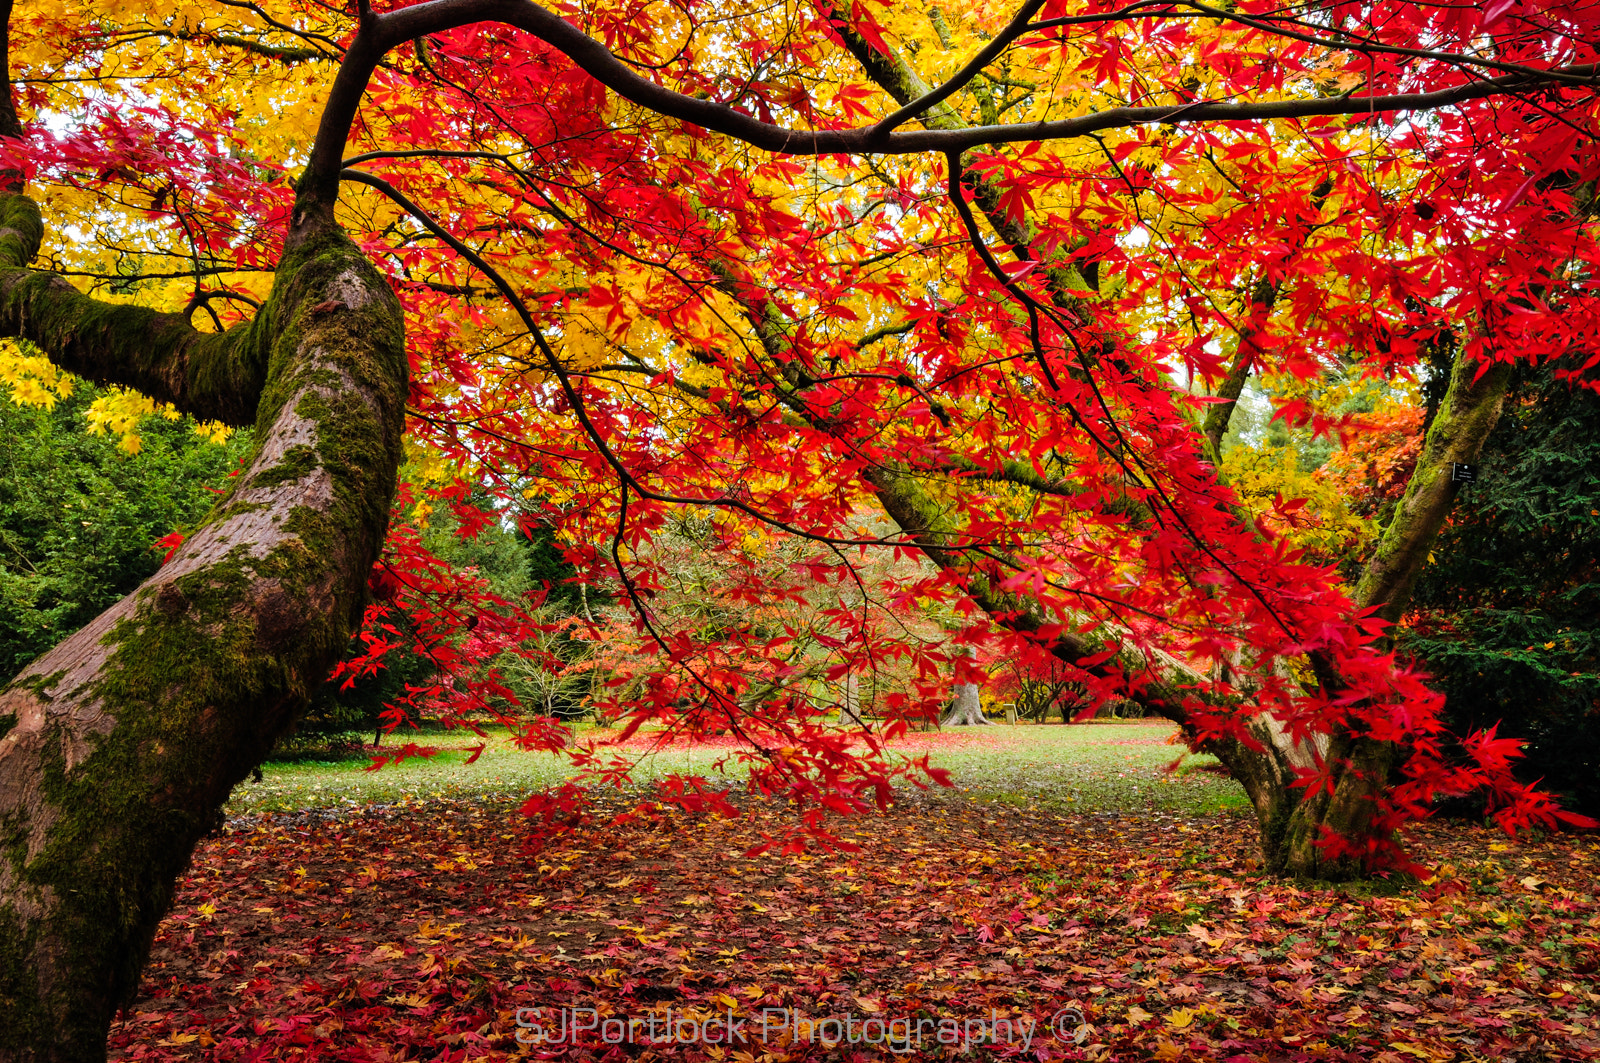 Photograph Acer of Westonbirt by Stephen Portlock on 500px